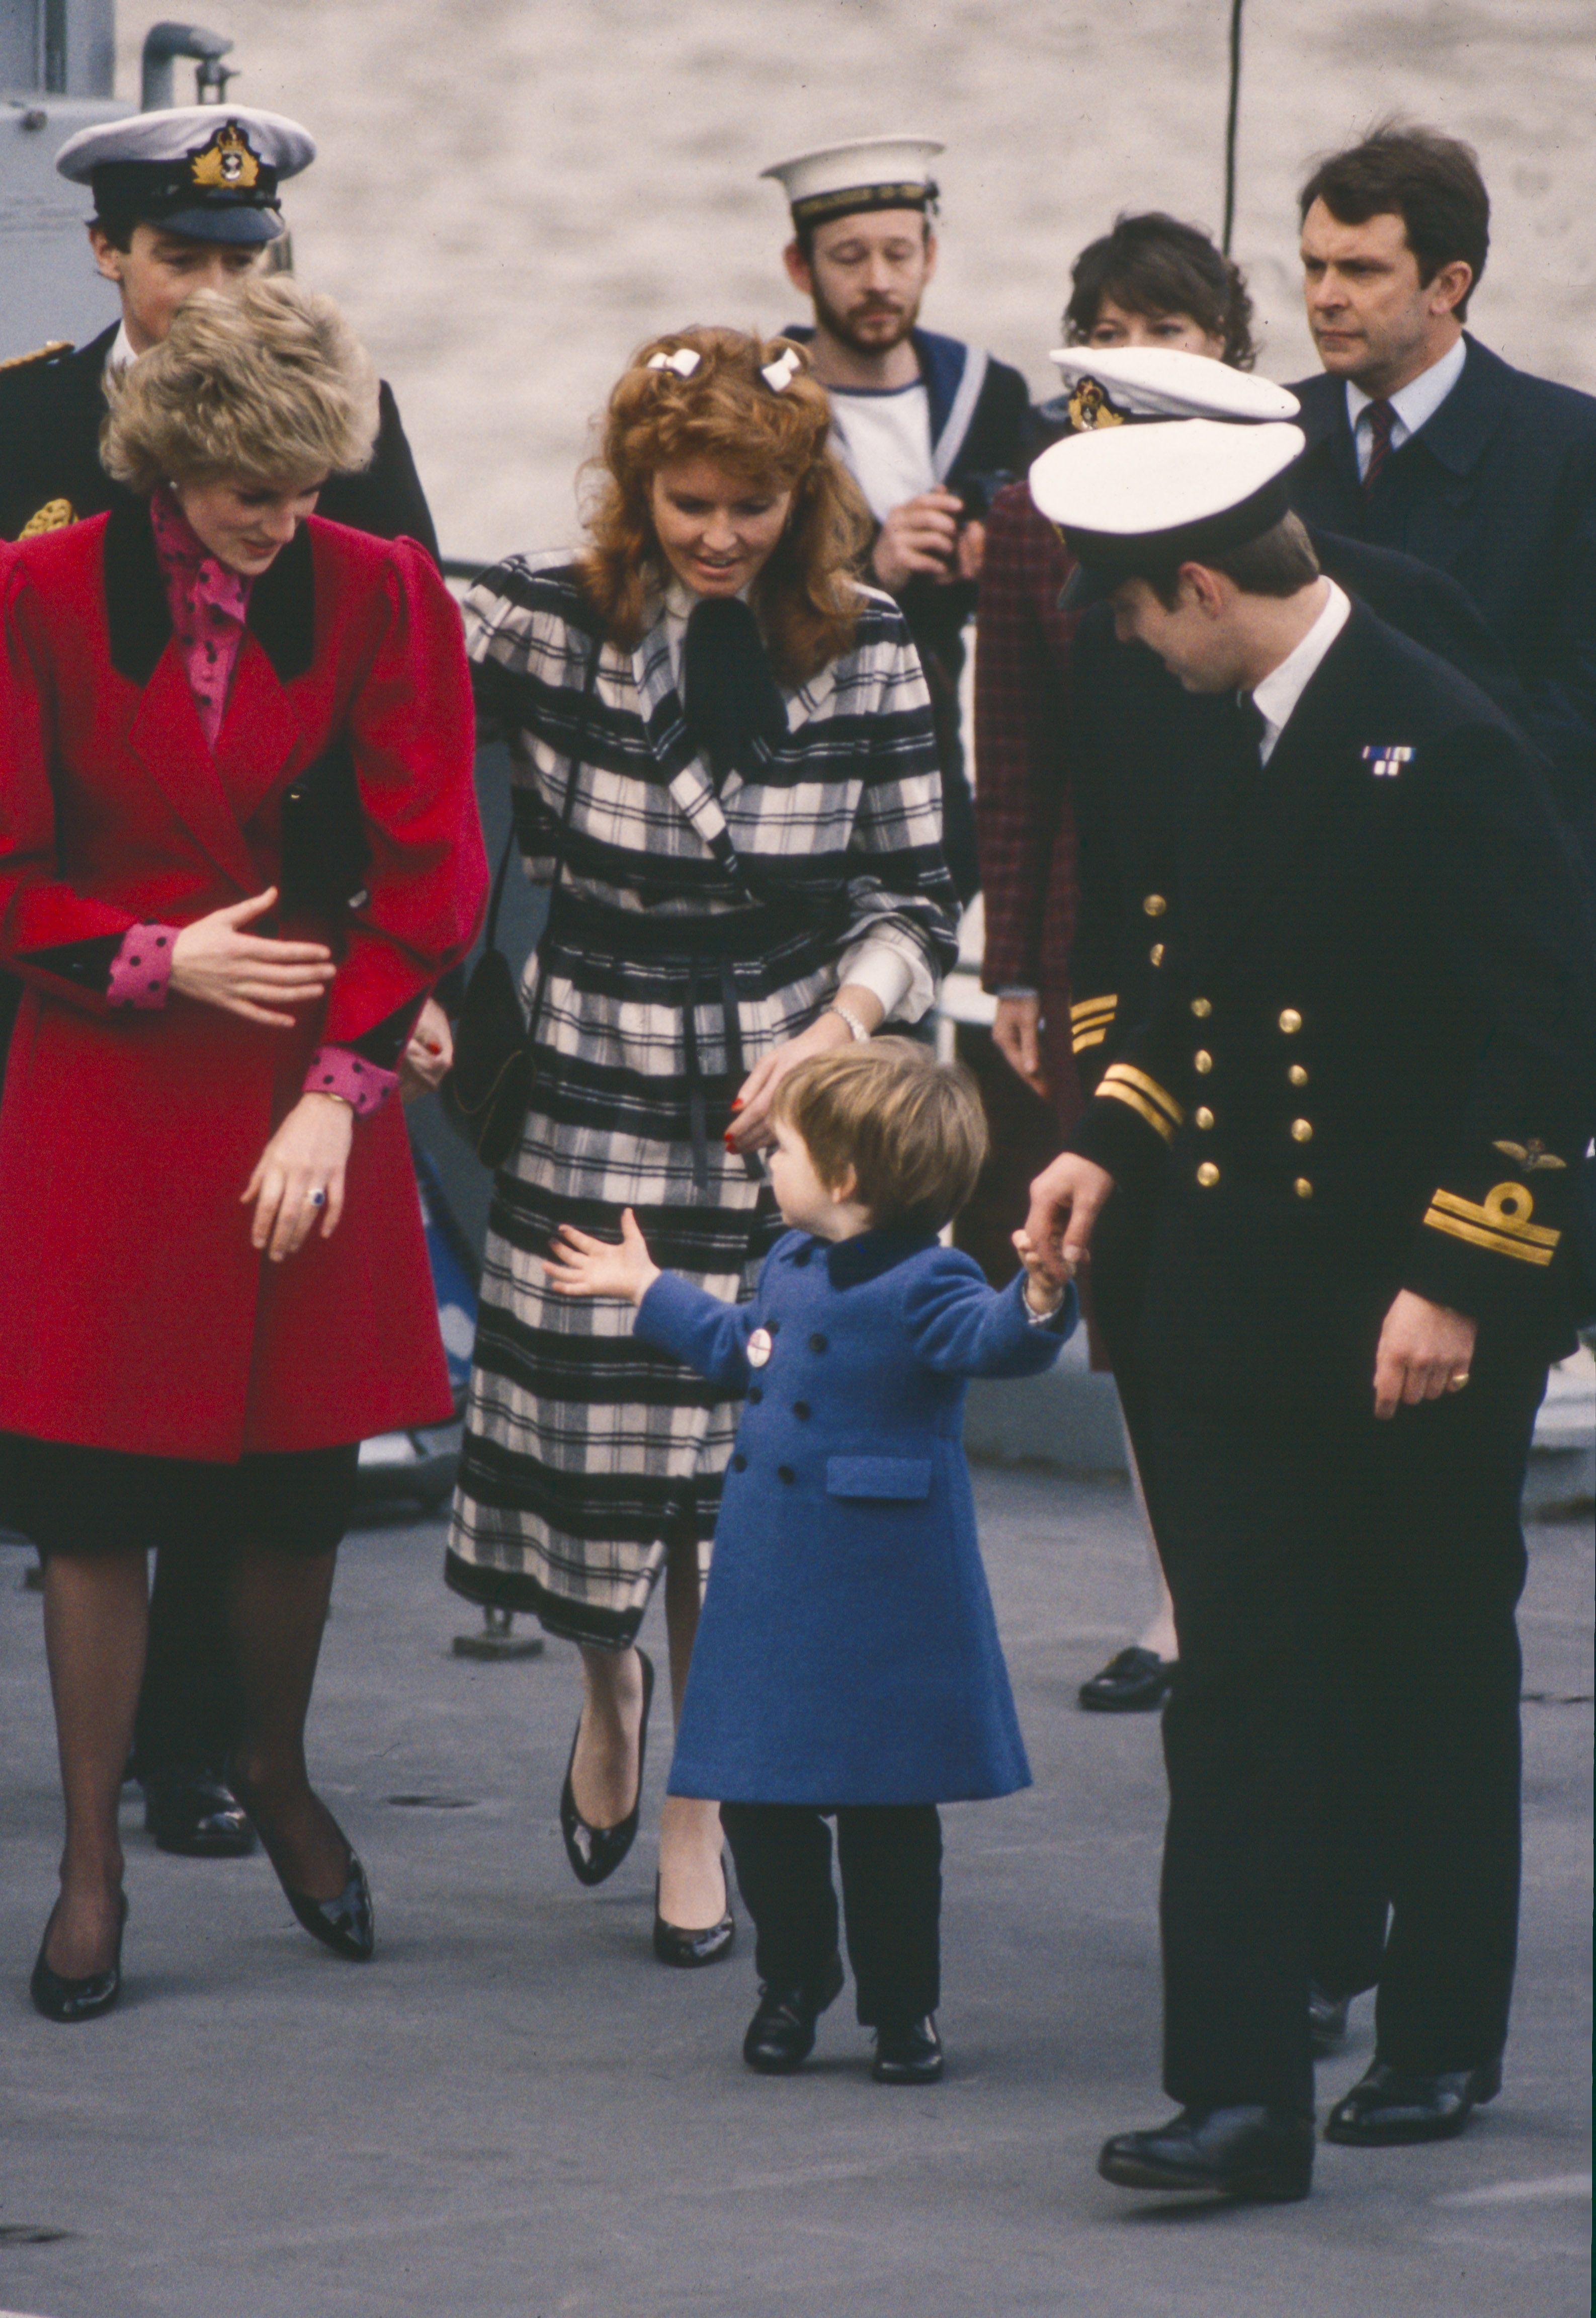 There is something very strange in the shots of Charles and Diana that they haven't paid attention to so far